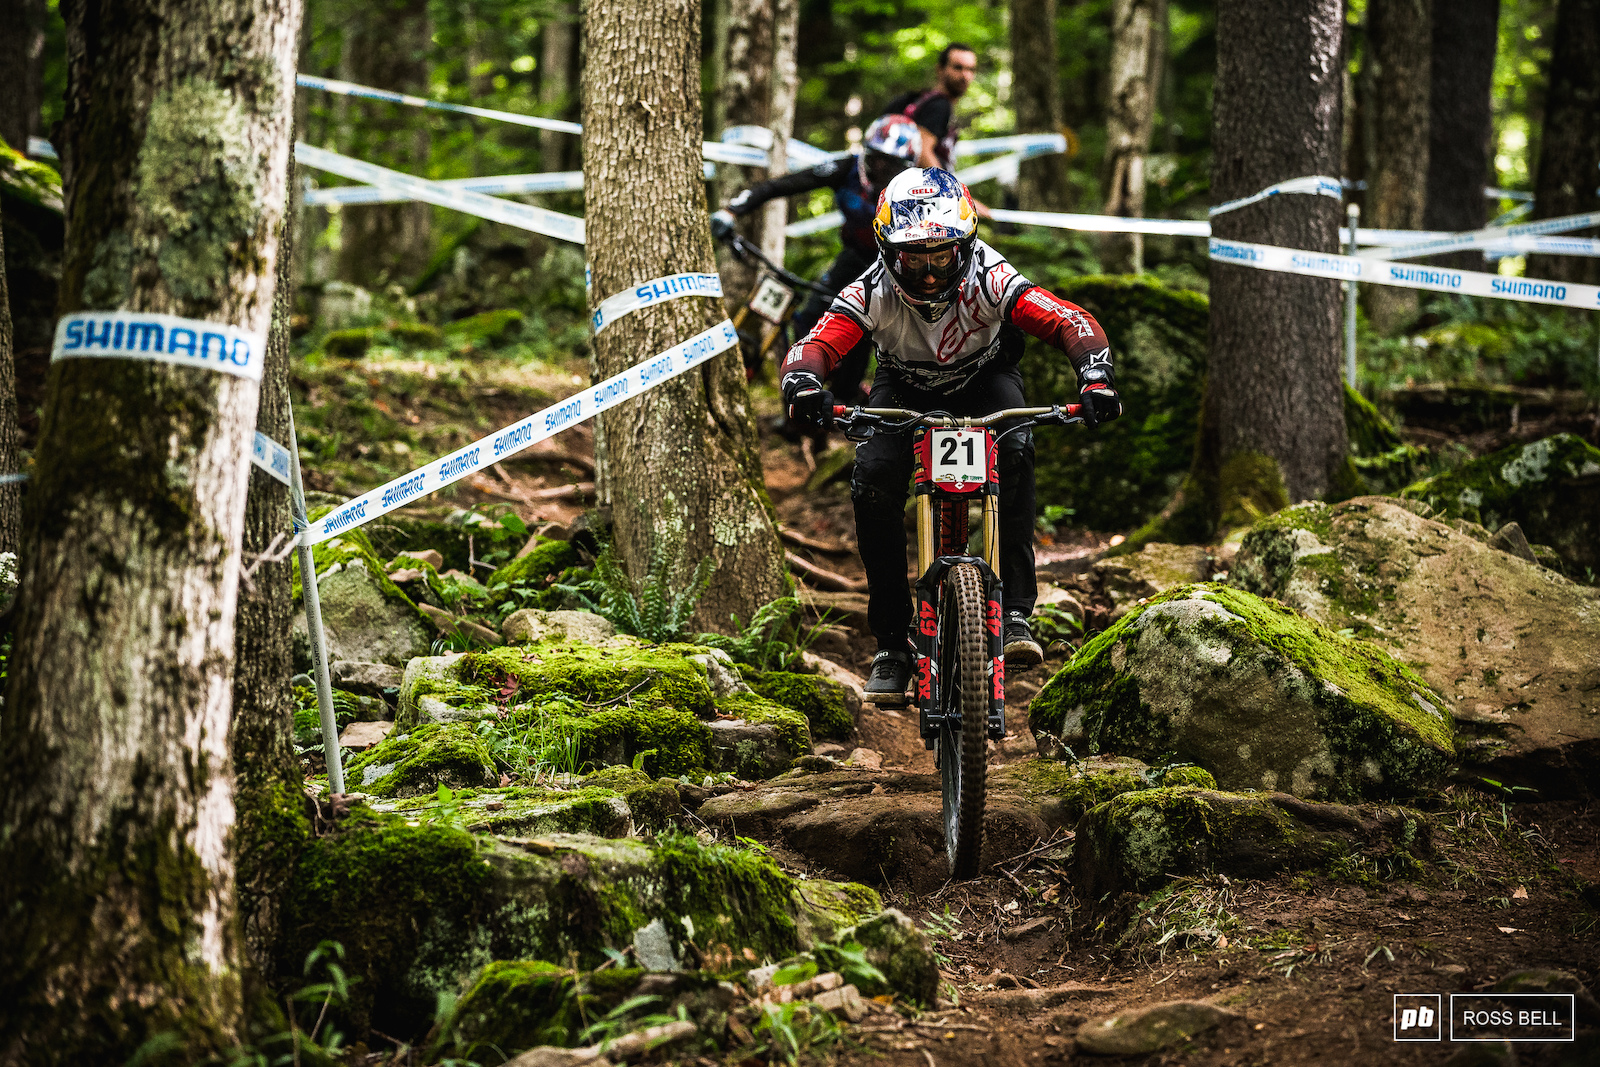 It s hard to get back in the racing groove mid season will Aaron Gwin fair better in Snowshoe than he did in MSA